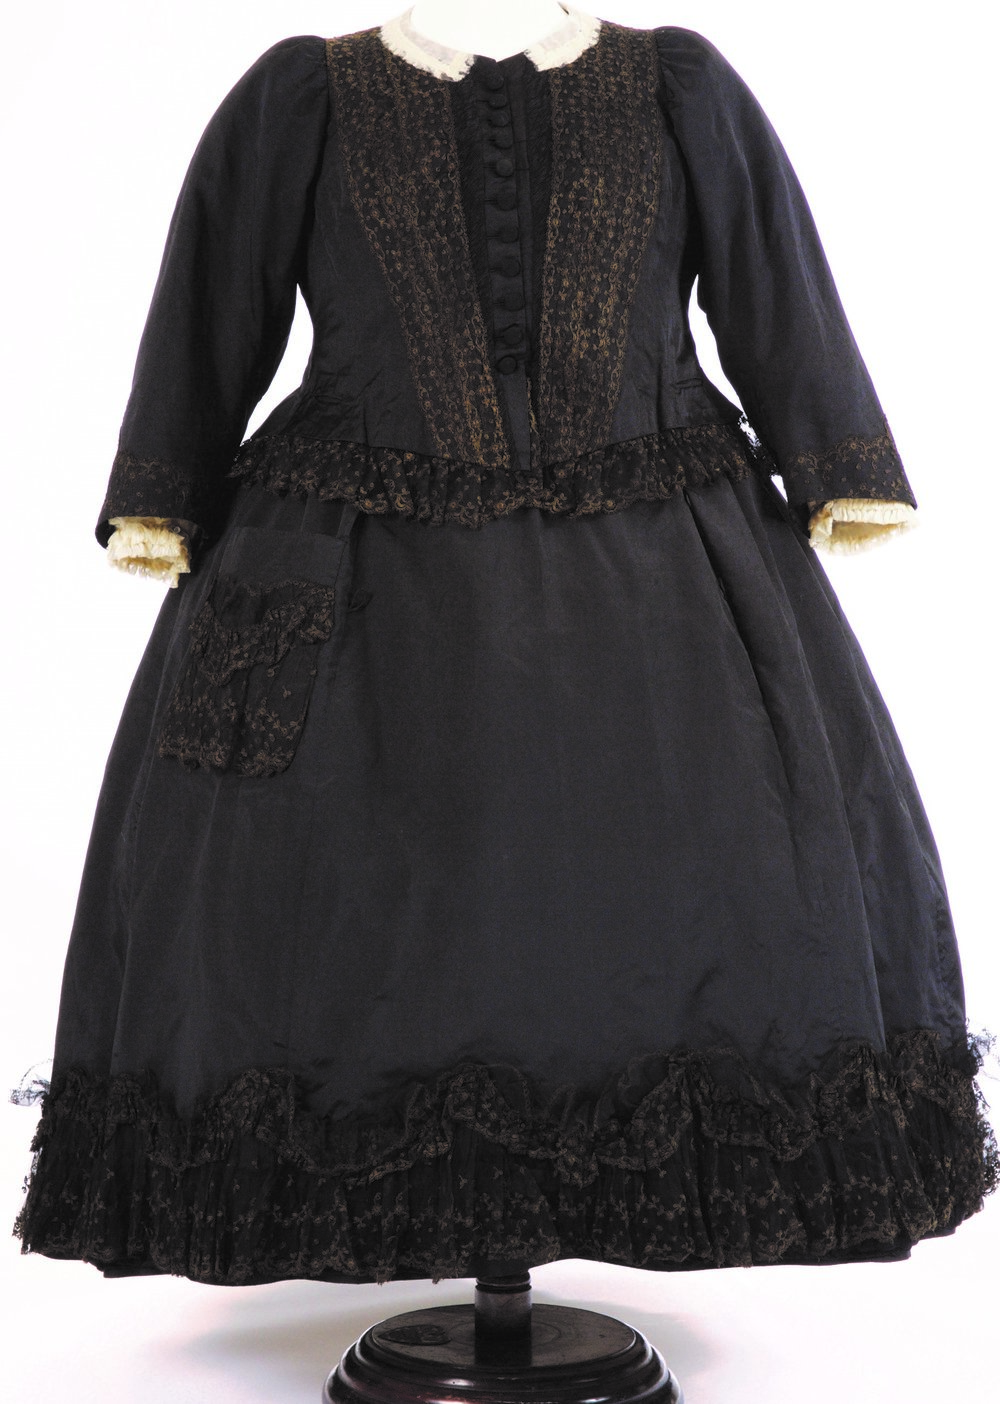 Black silk and net gown worn by Victoria in the 1890s © Fashion Museum, Bath and North East Somerset Council, UK/Bridgeman Images.